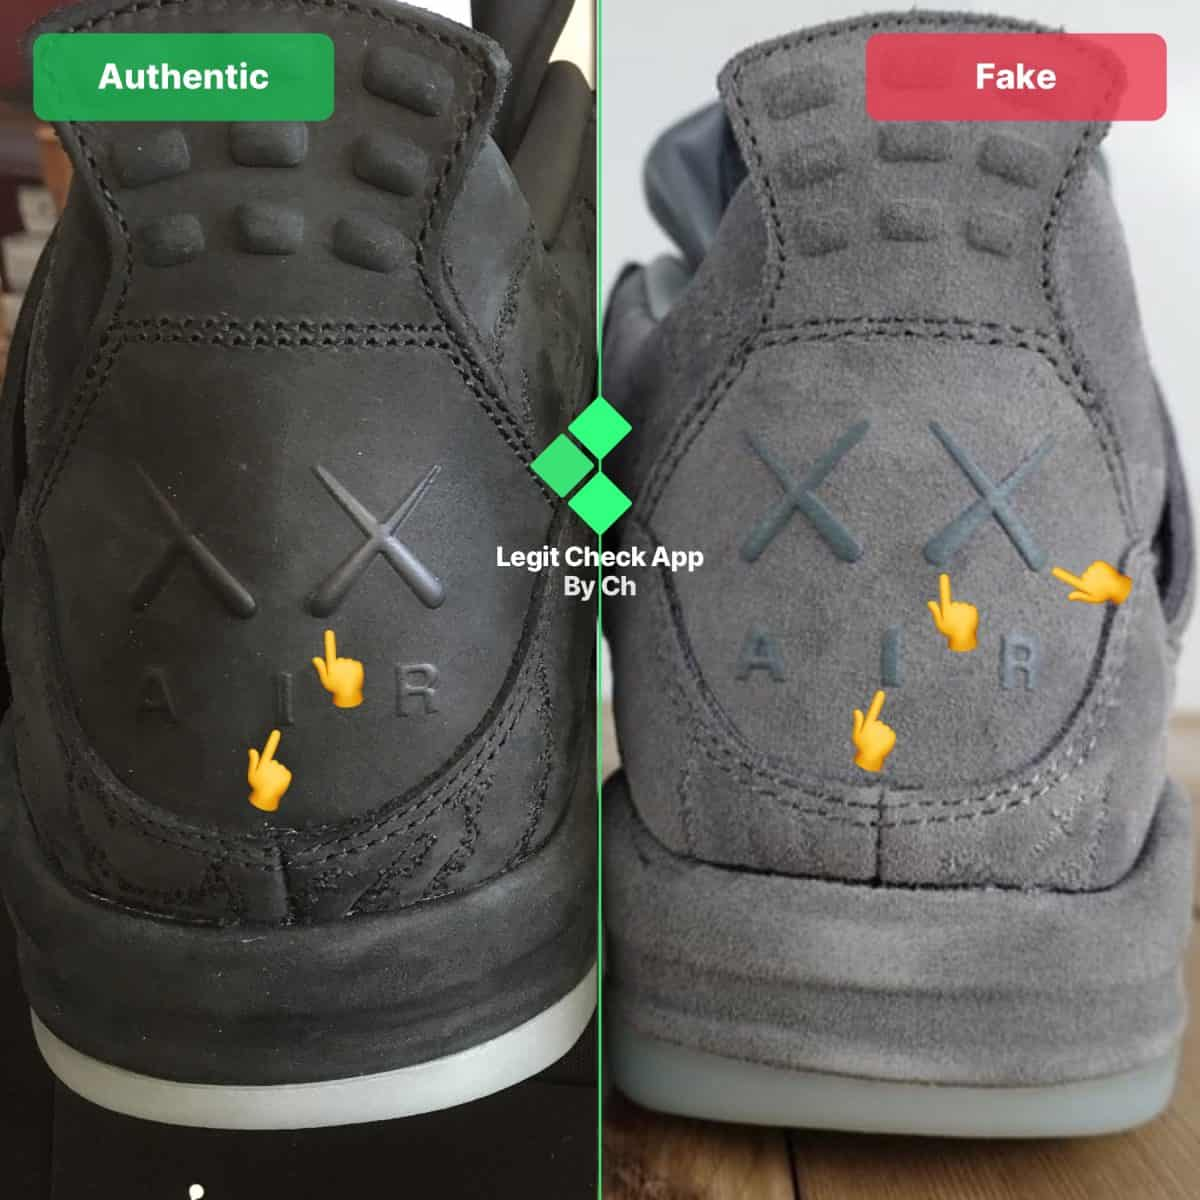 Kaws 4 Legit Check Guide